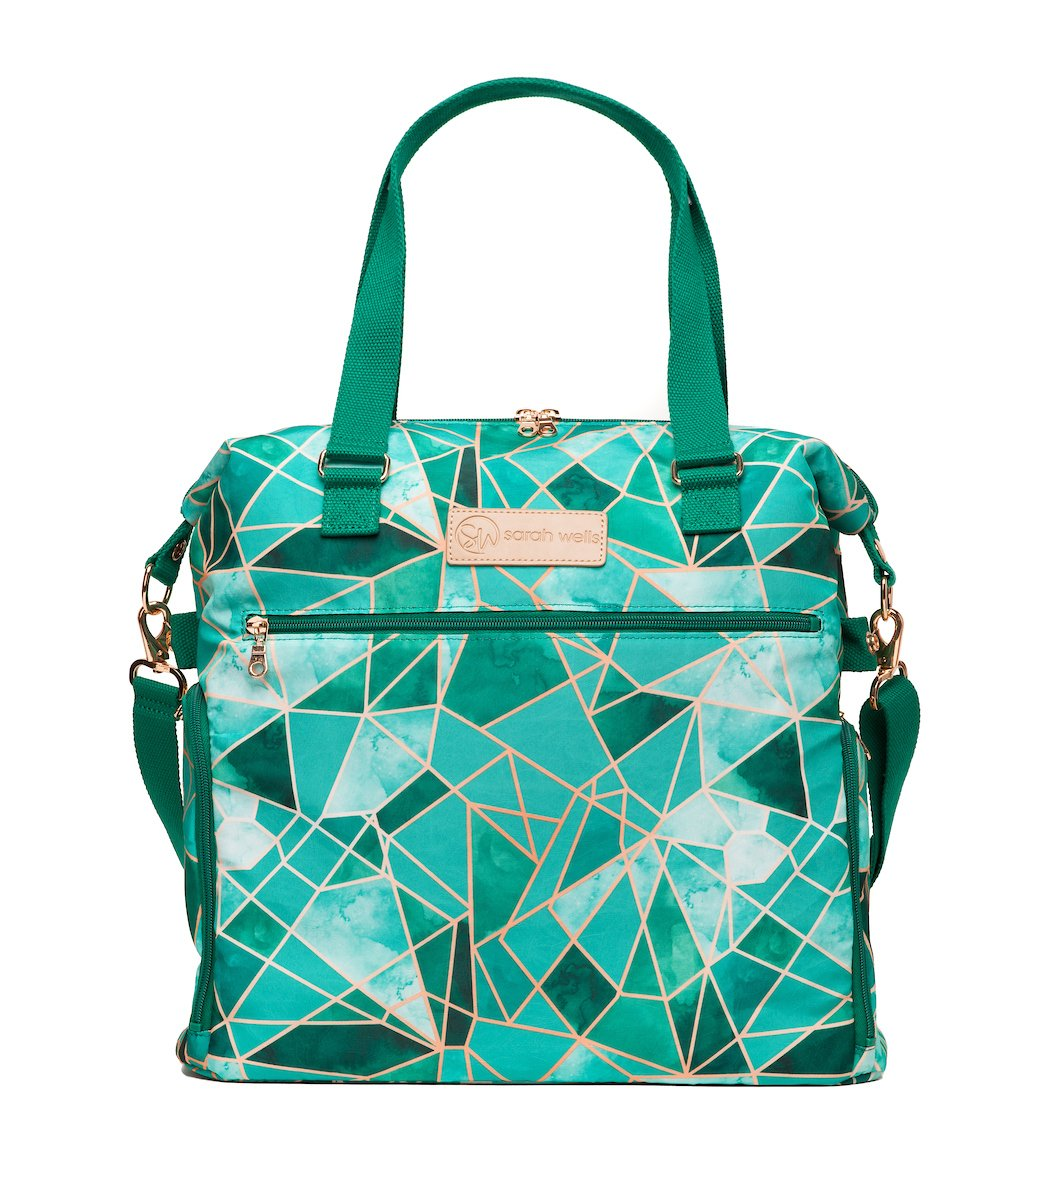 Sarah Wells Breast Pump Bag (Lizzy-Mosaic) - Limited Edition